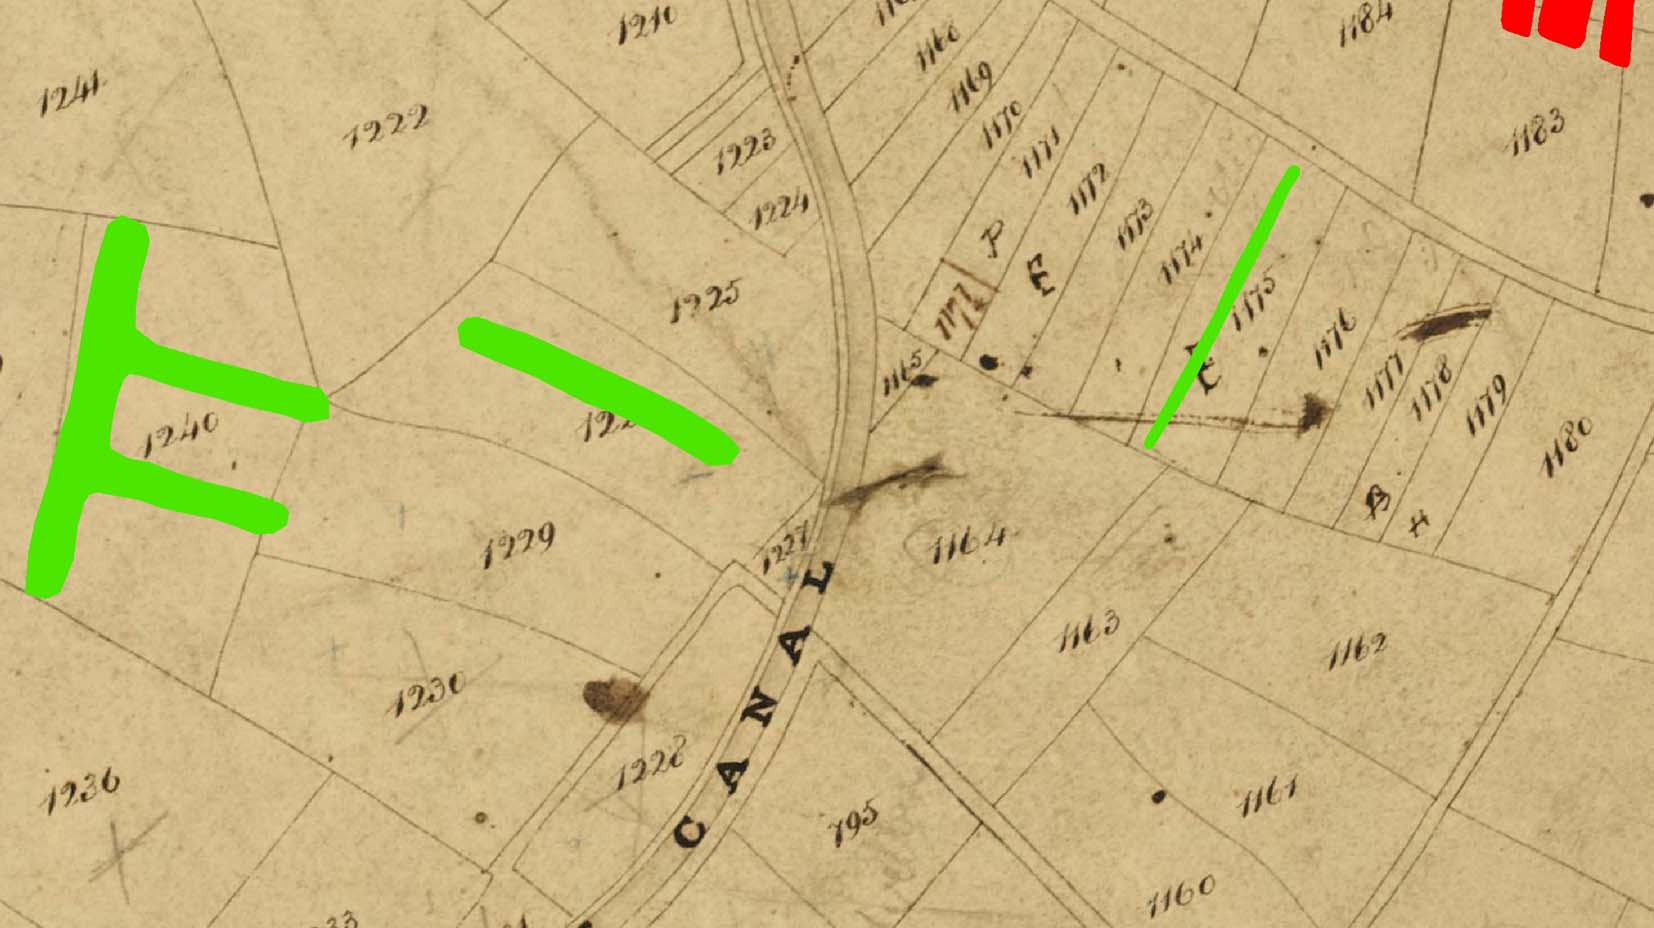 Curvilinear green conjoined lines depict the earthwork ditches, fitting into the pattern of fields shown on the underlying scan of a tithe map.